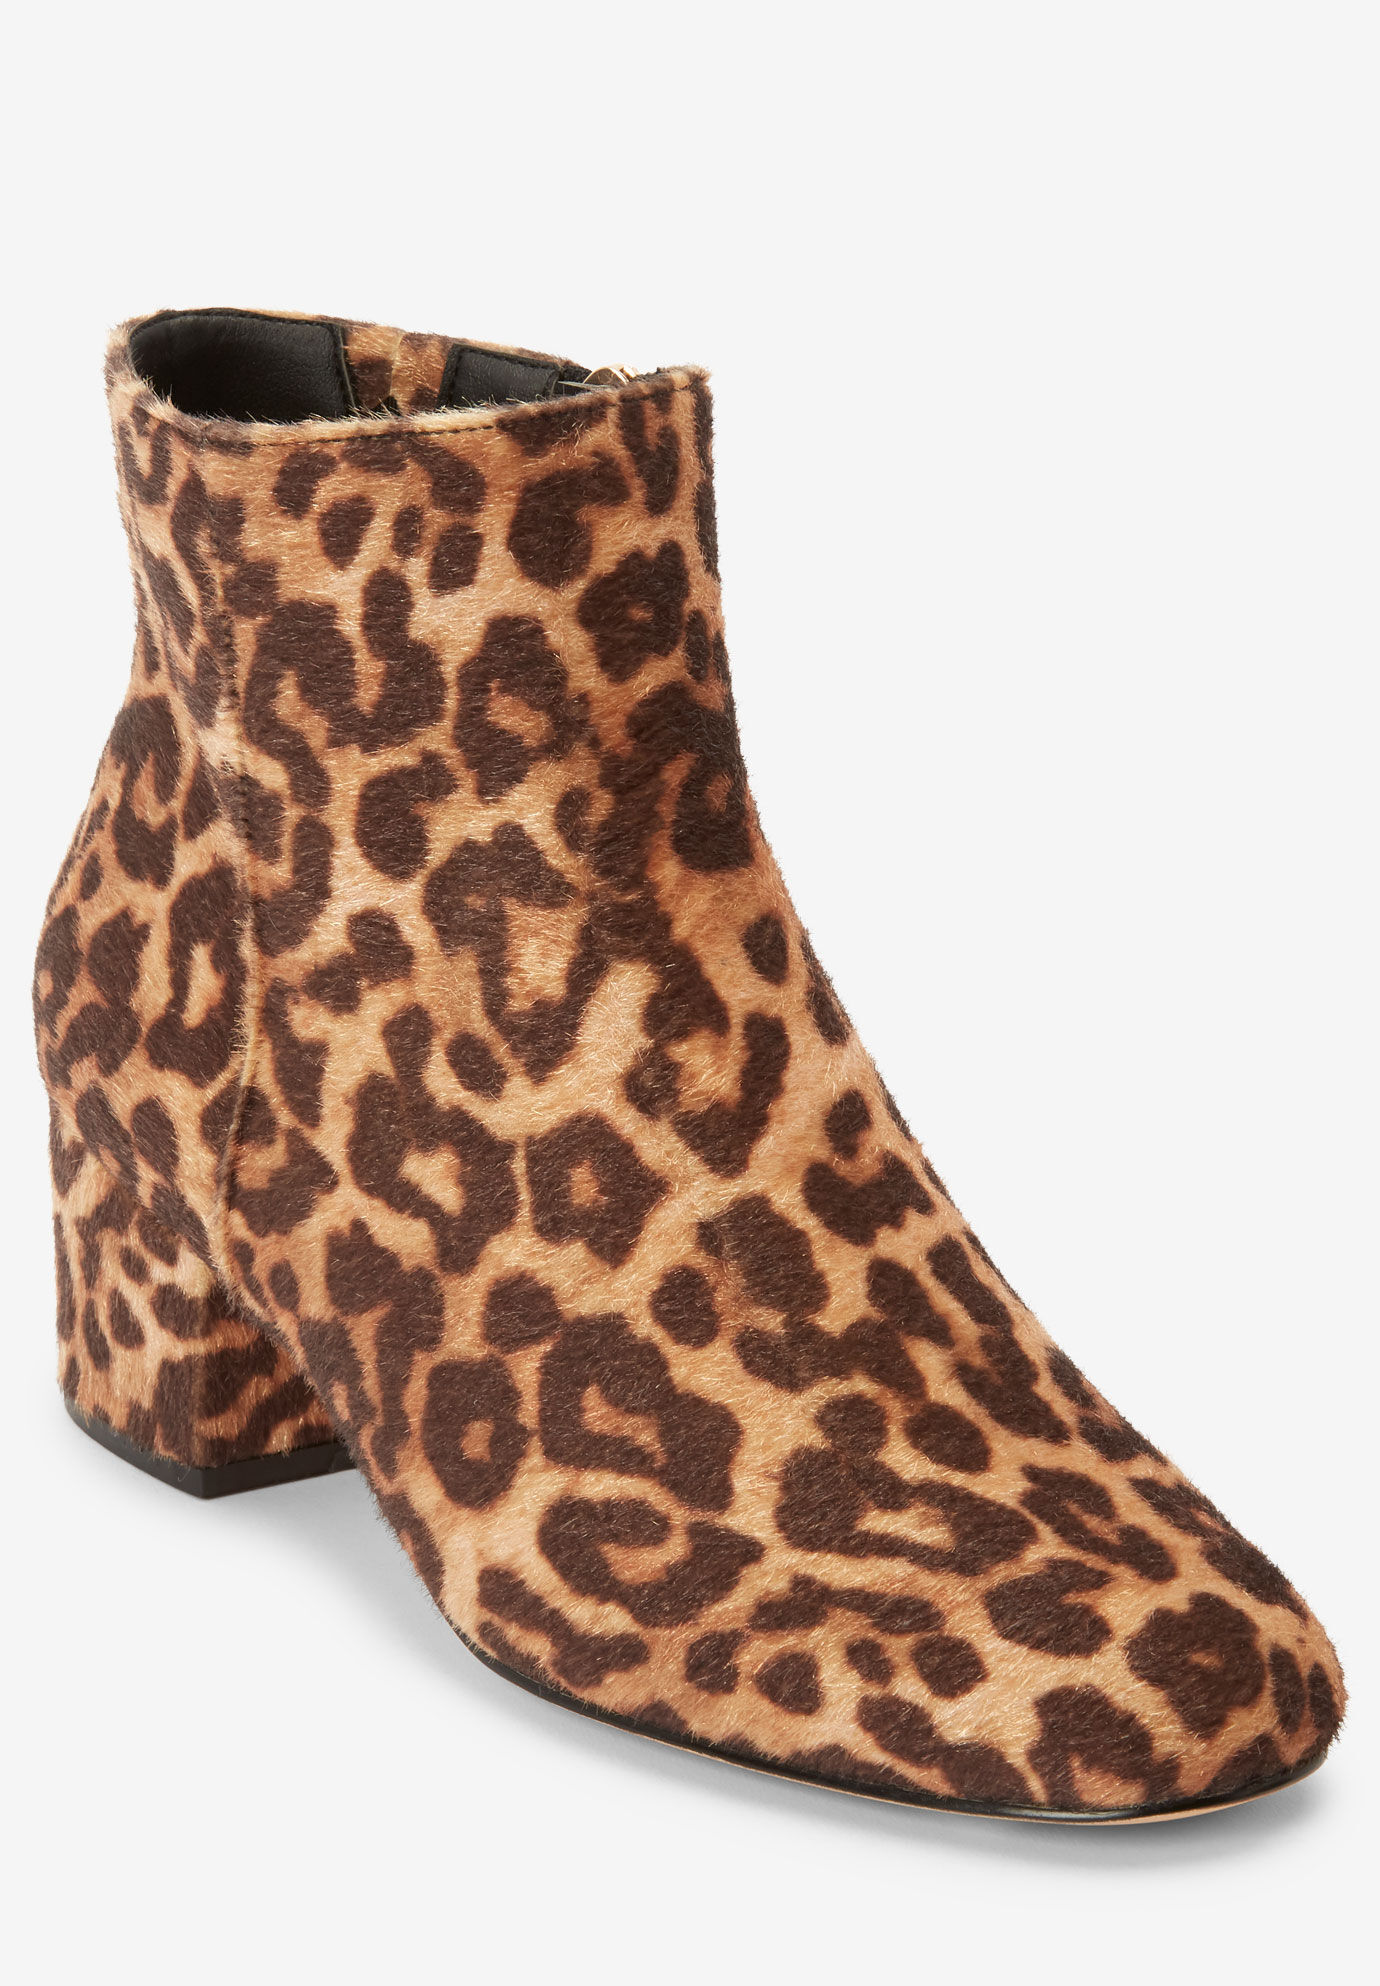 Wide Width Boots for Women   Jessica London